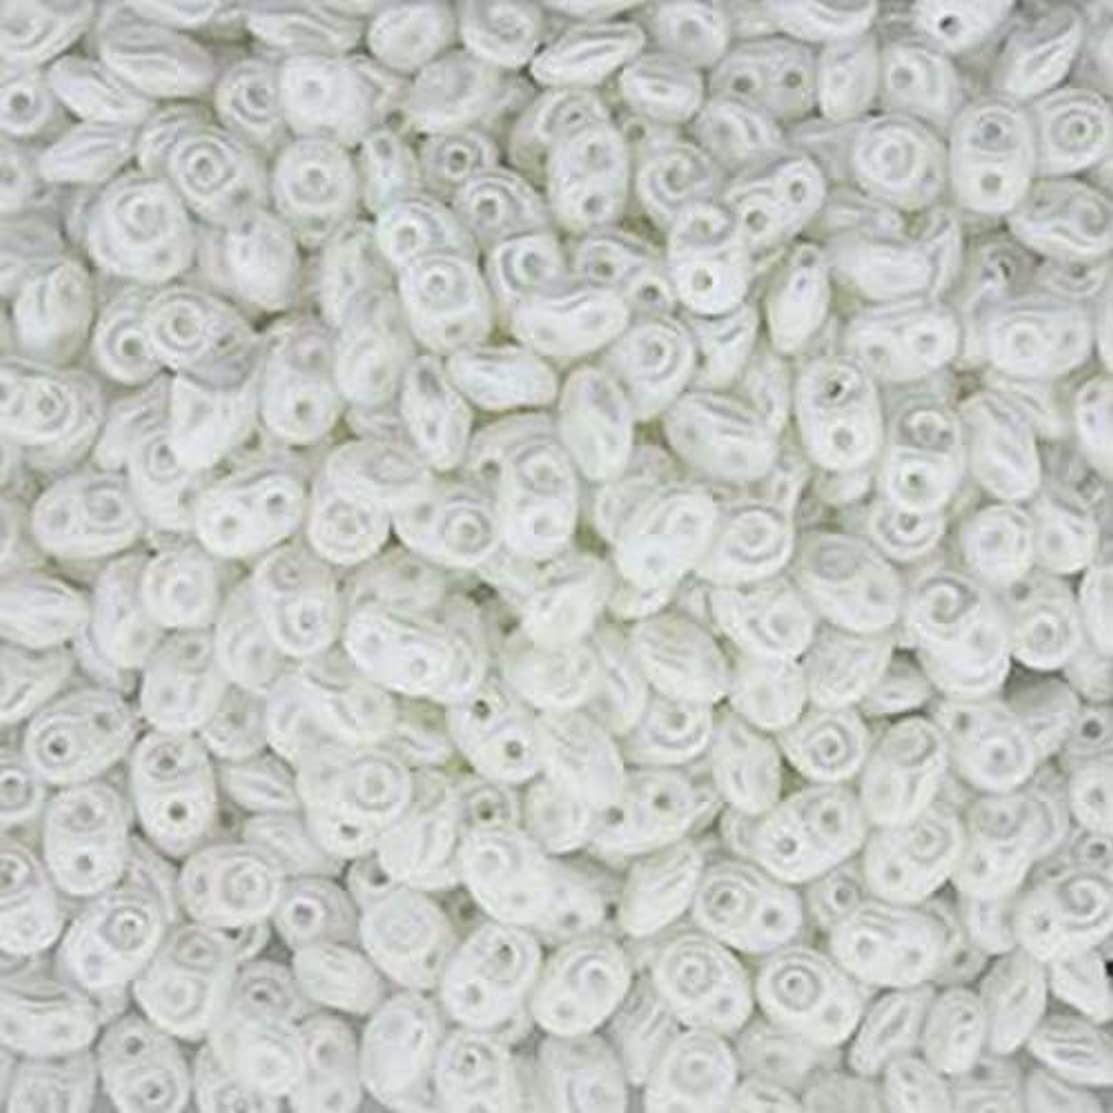 SuperDuo Pastel White 2.5x5mm 2 Hole Beads Czech Glass Seed Beads 100 Gram Bag